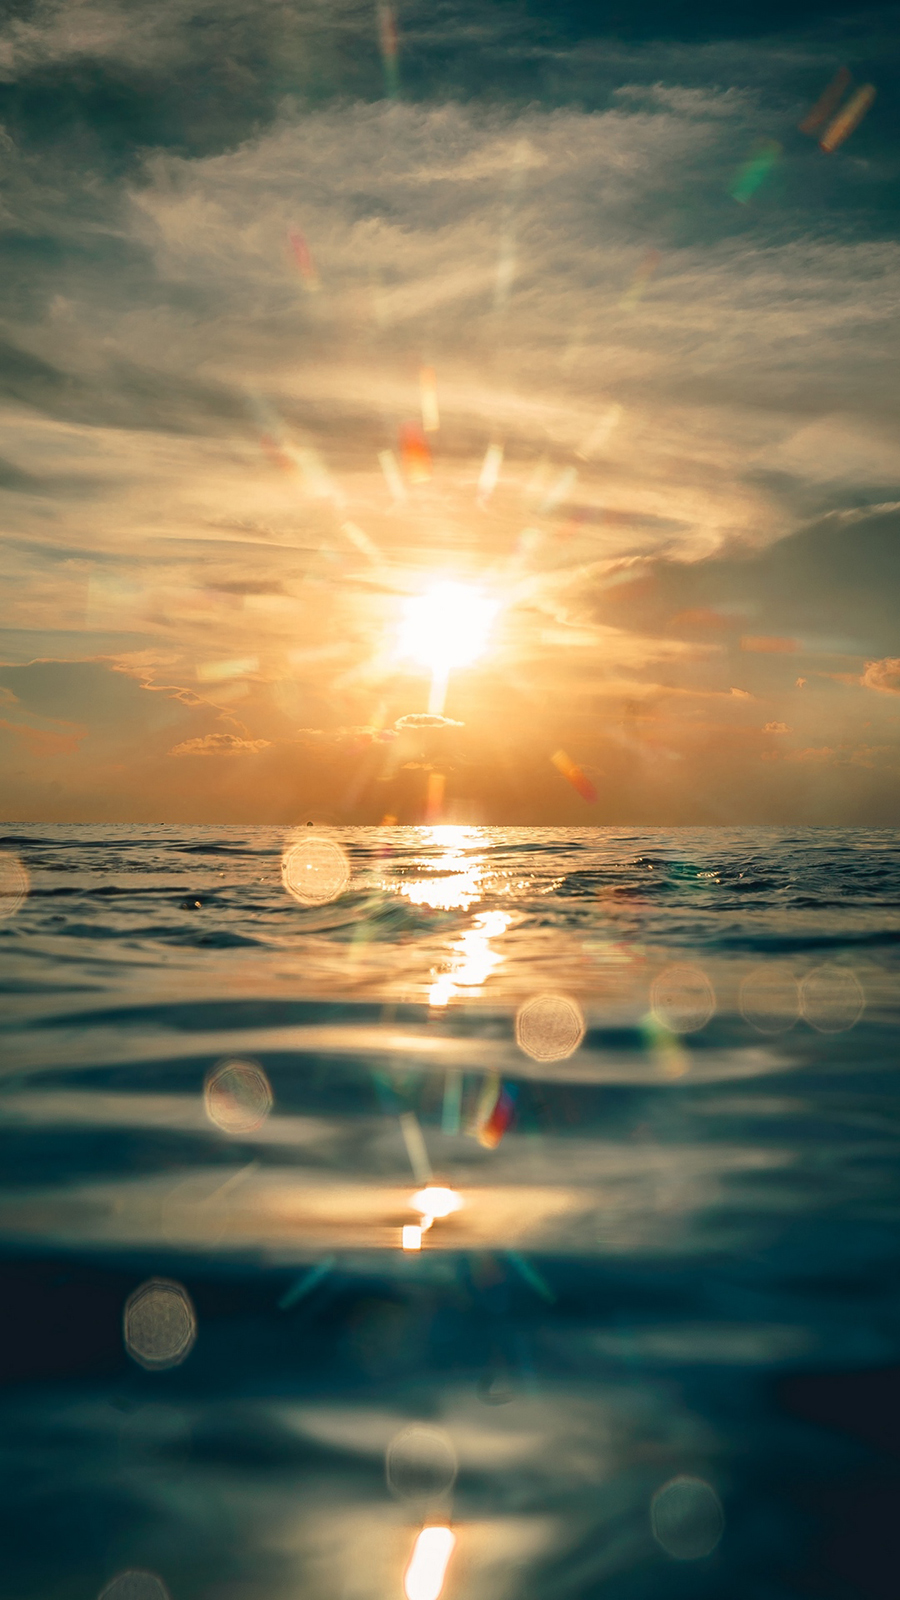 Sunset Sea Wallpapers Free Download